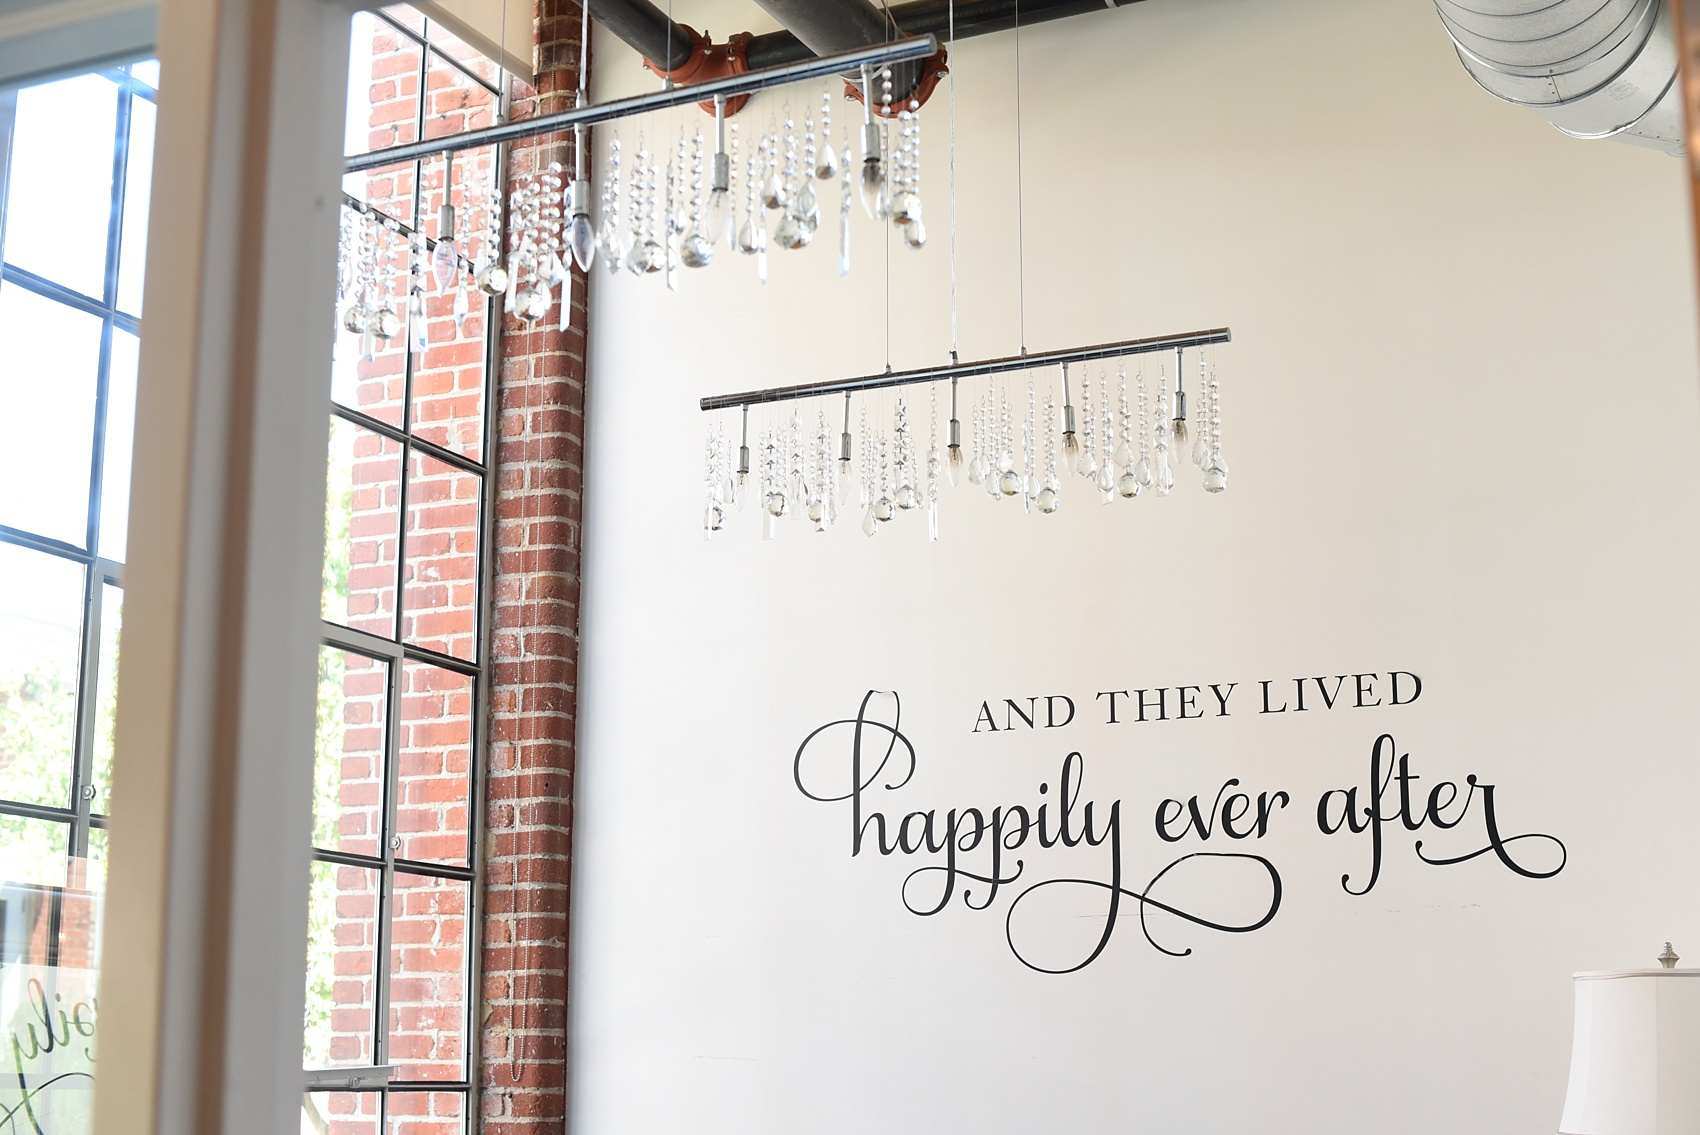 Mikkel Paige Photography photos from The Cotton Room wedding venue in Durham, NC. A Happily Ever After decal adorns the bridal suite wall.